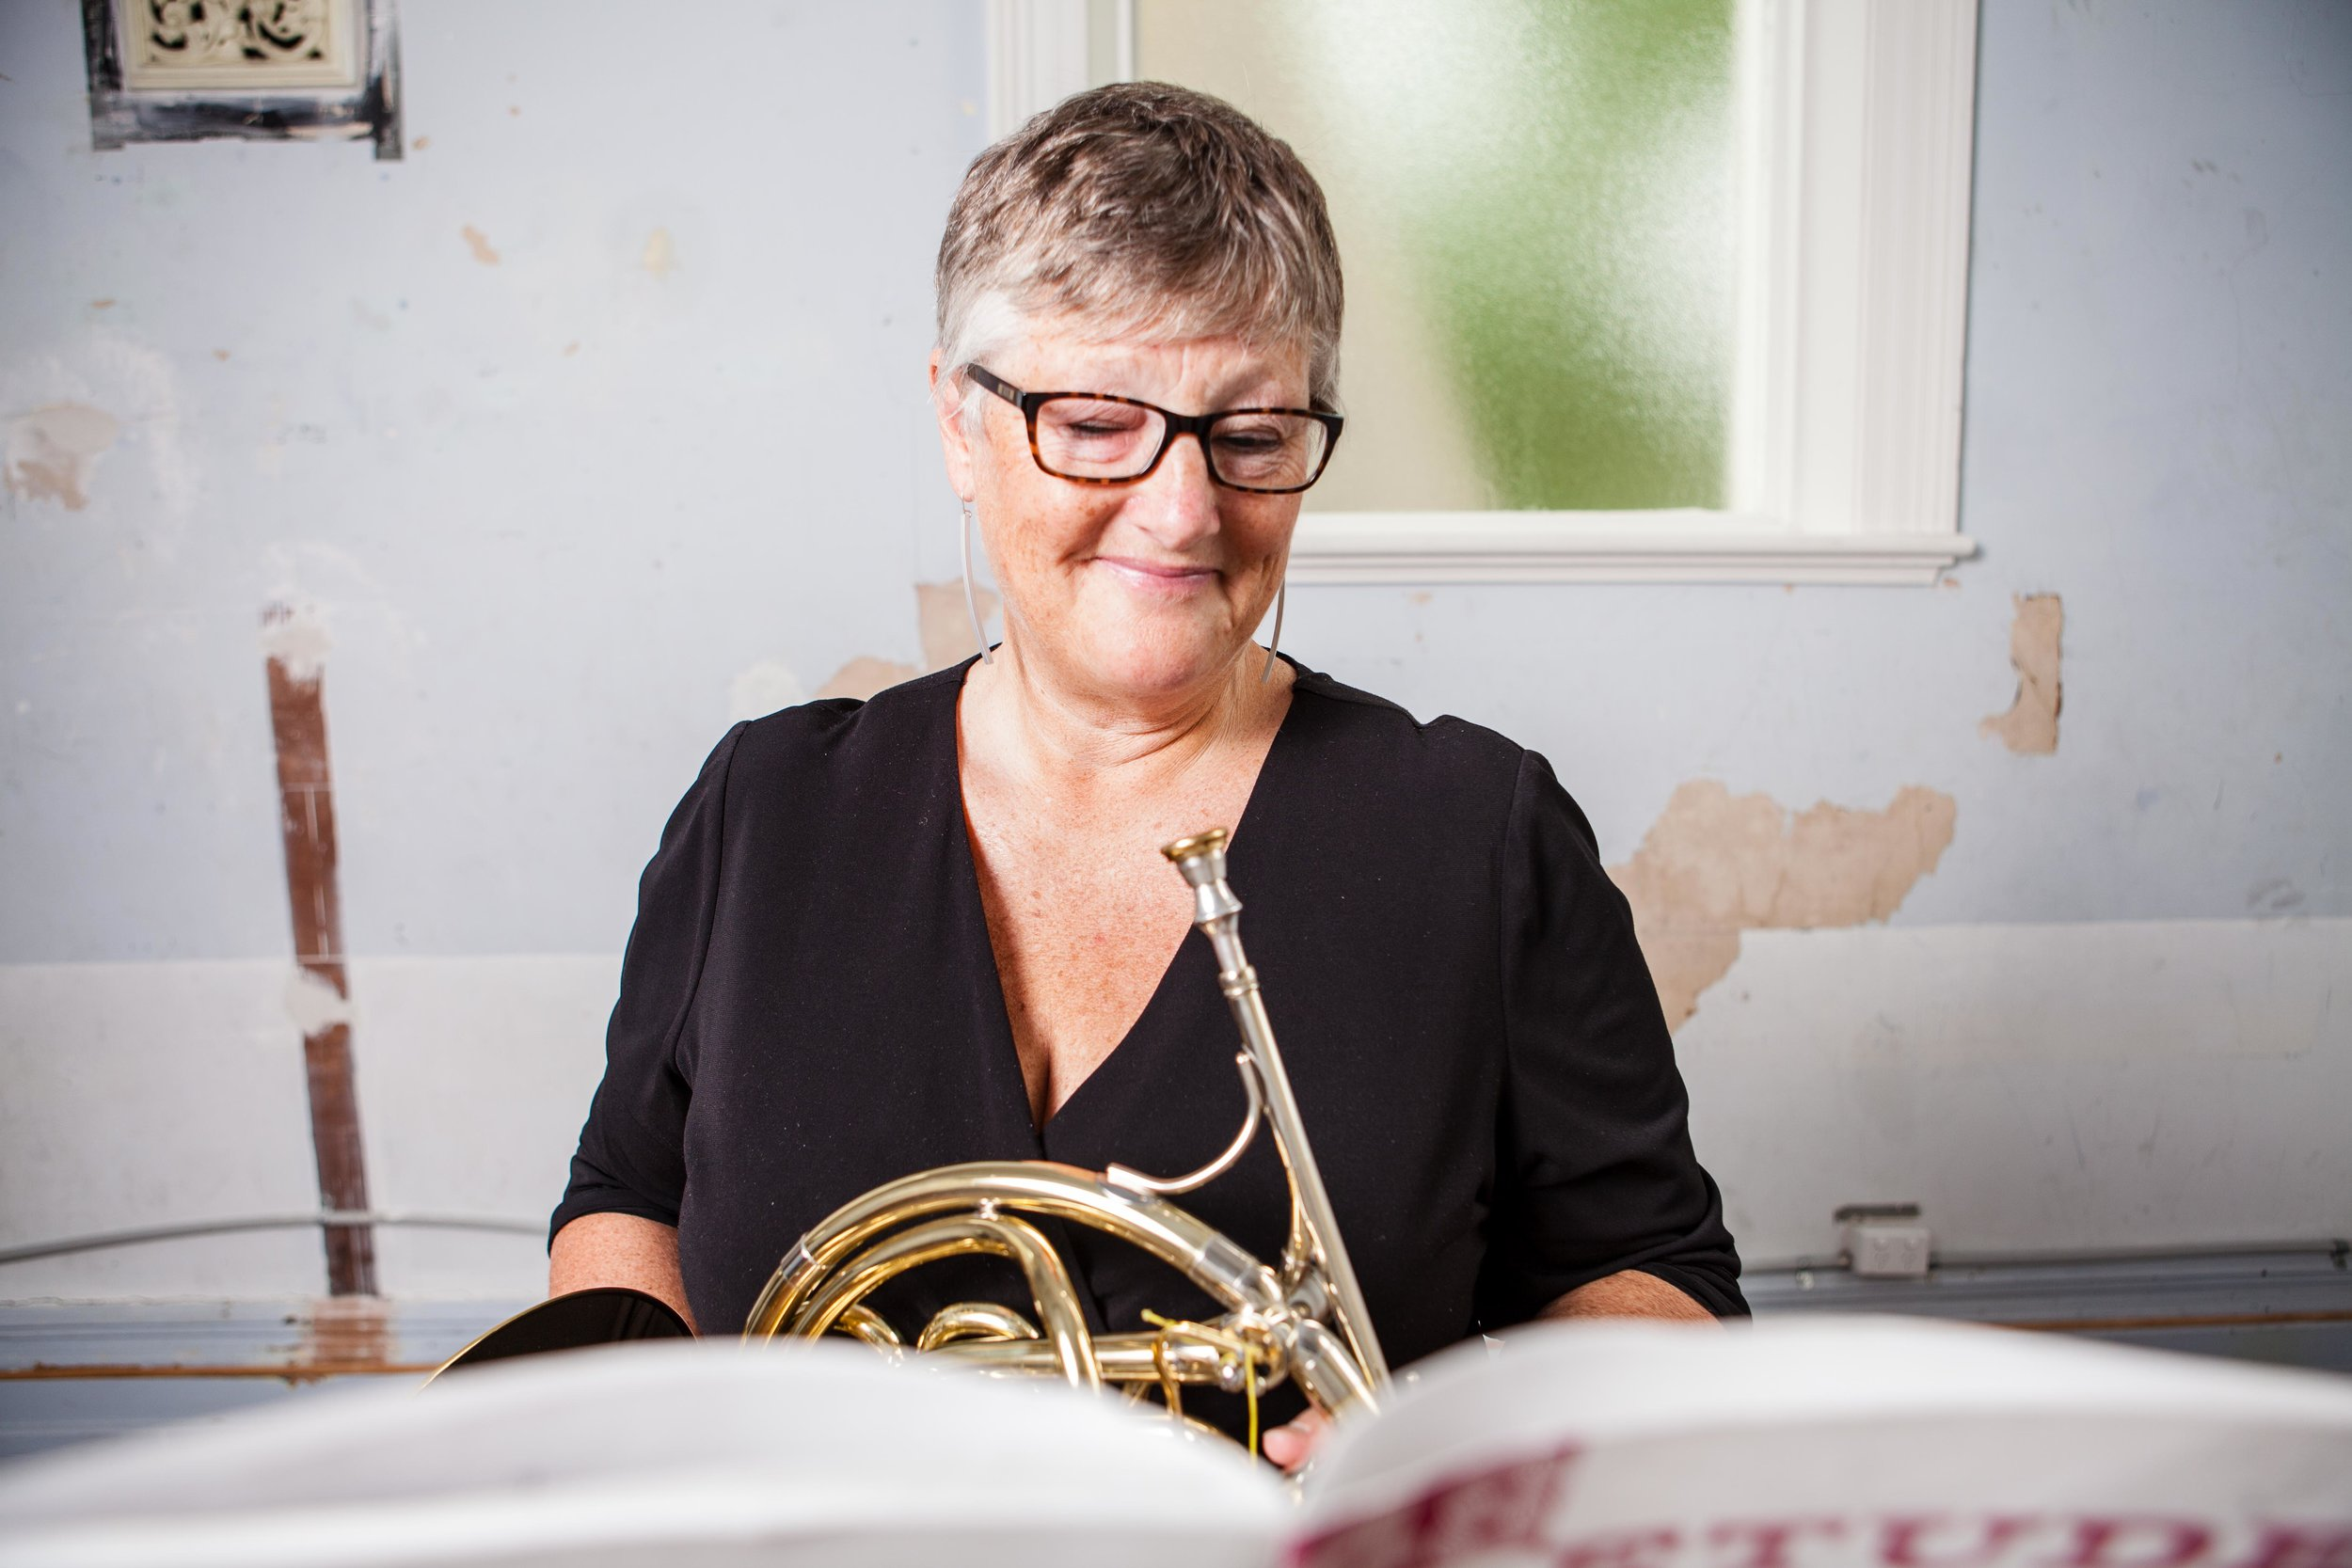 Professional Musician - I am a professional orchestral horn playing working in most Australian Orchestras. I was a principal horn in Orchestra Victoria for almost 20 years and now I am a freelancer.